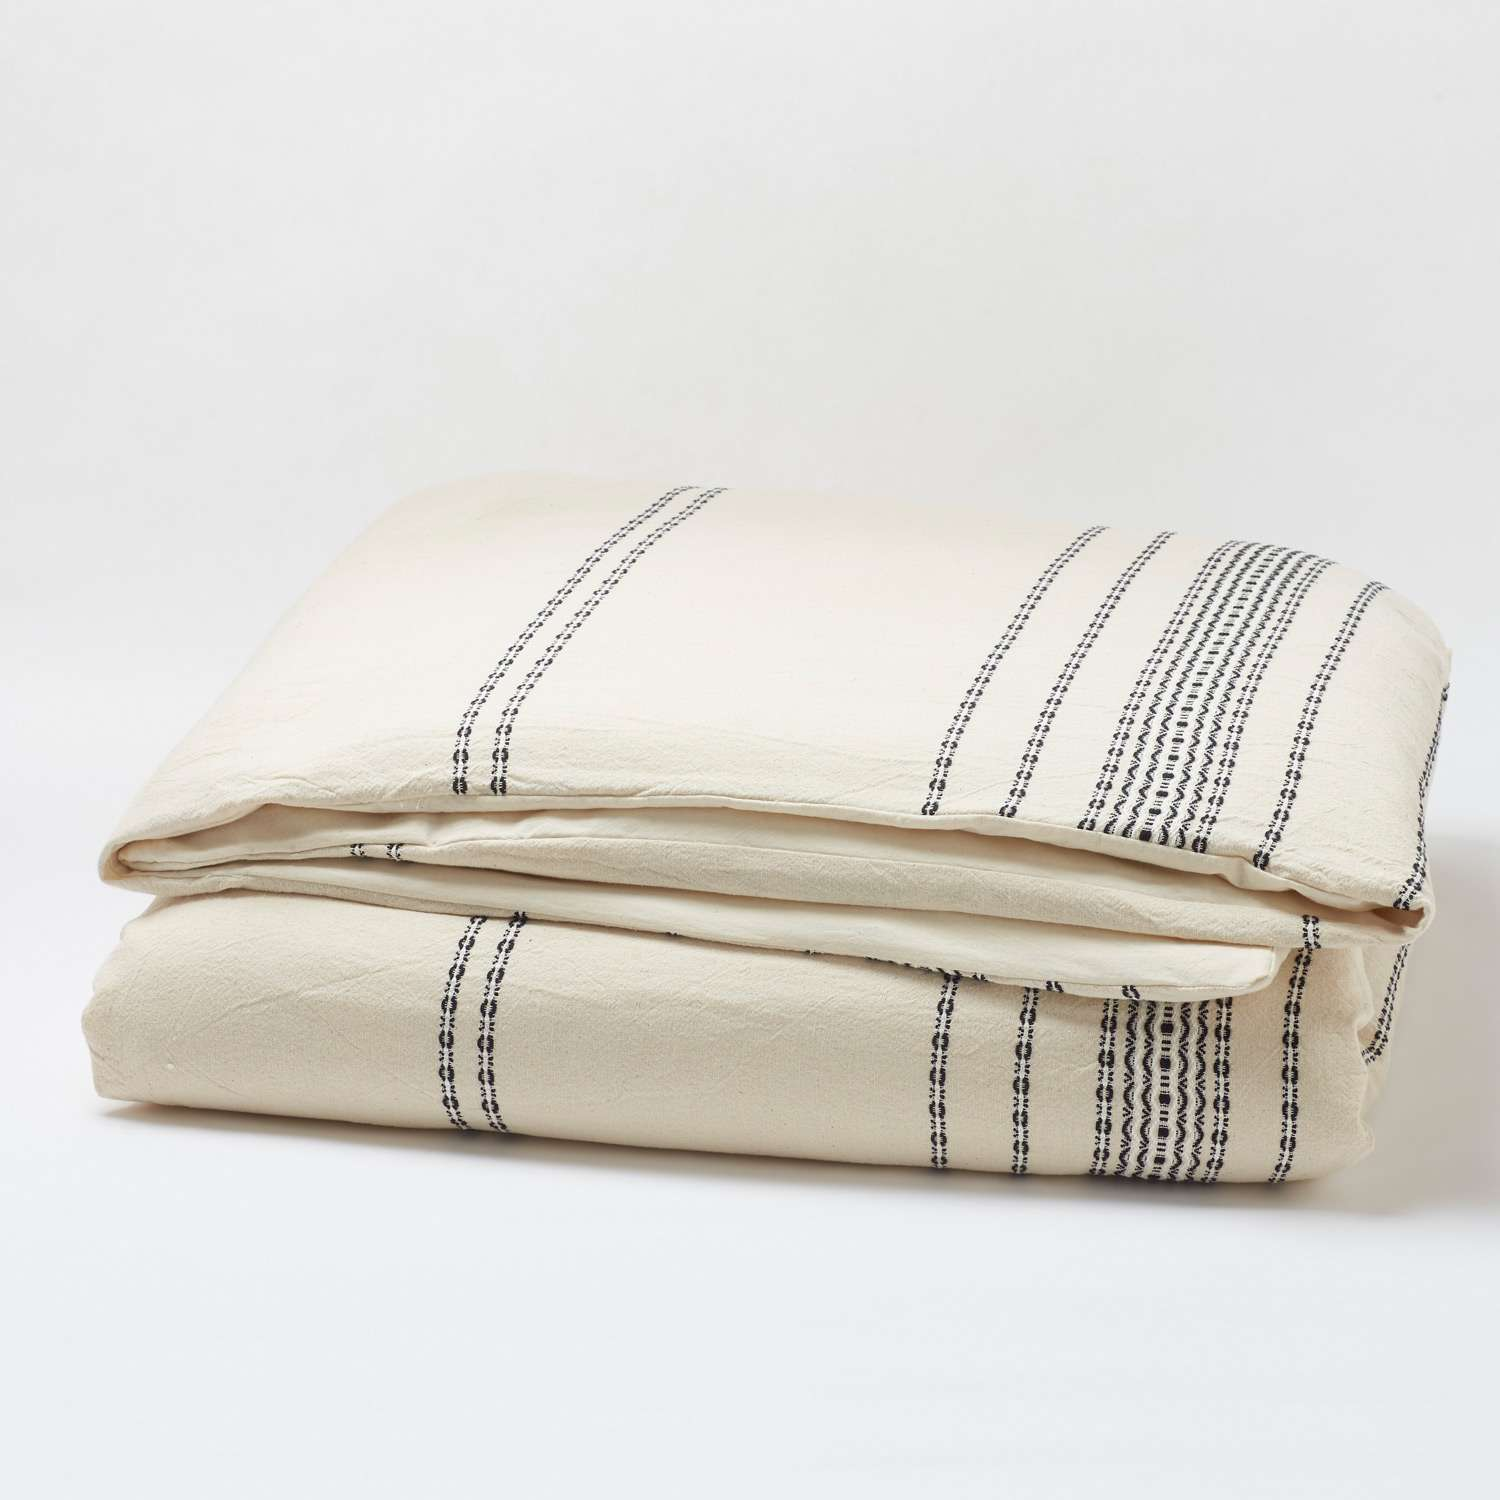 Naturopathica | Coyuchi | Pottery Barn Sheets Review